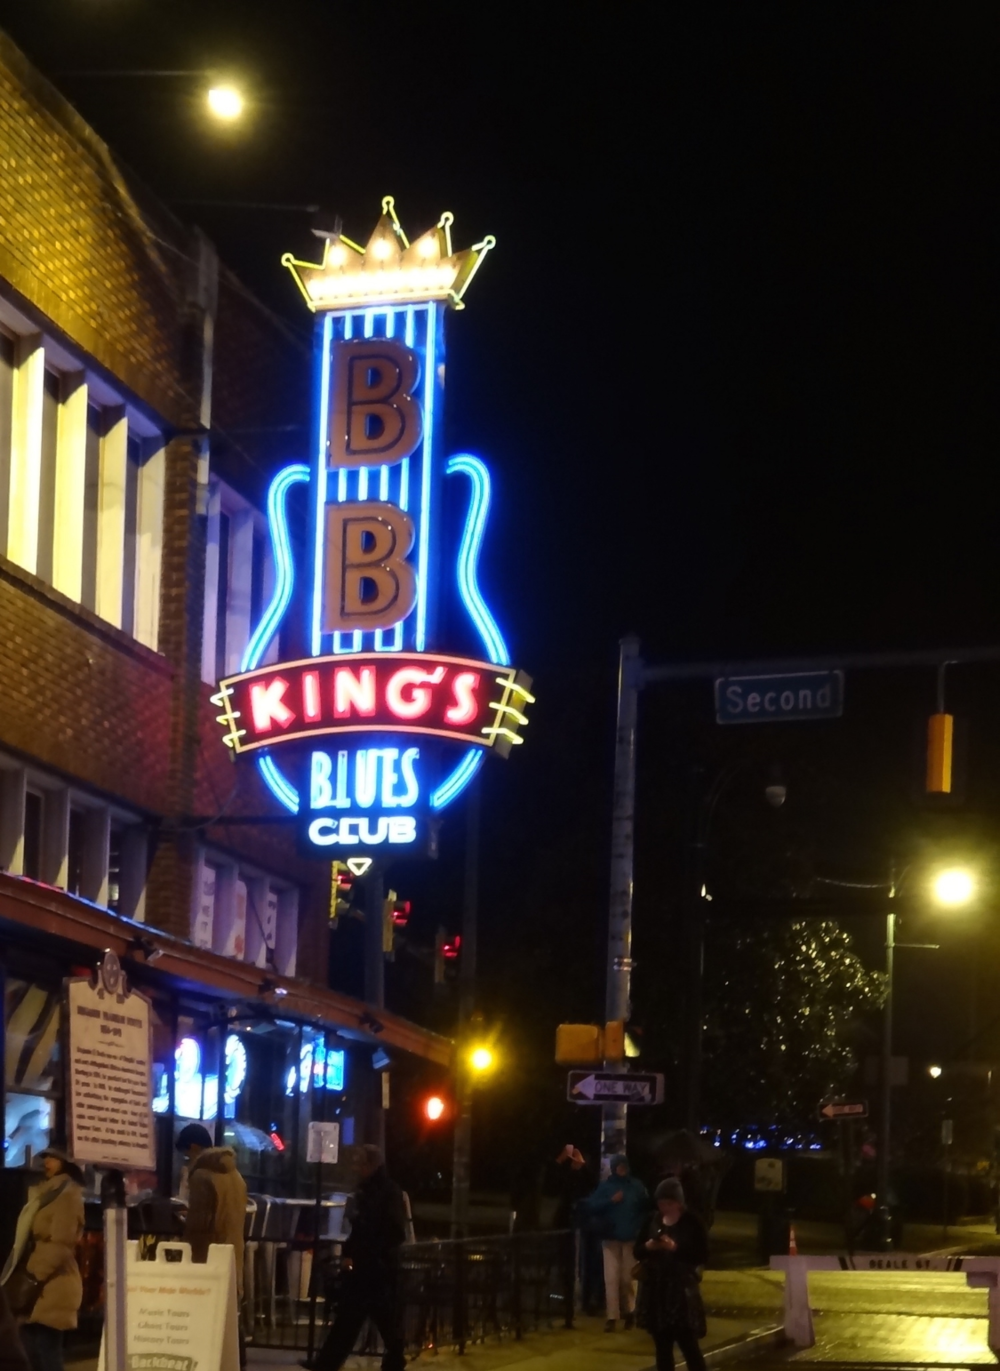 BB King's Blues Club on Beale Street